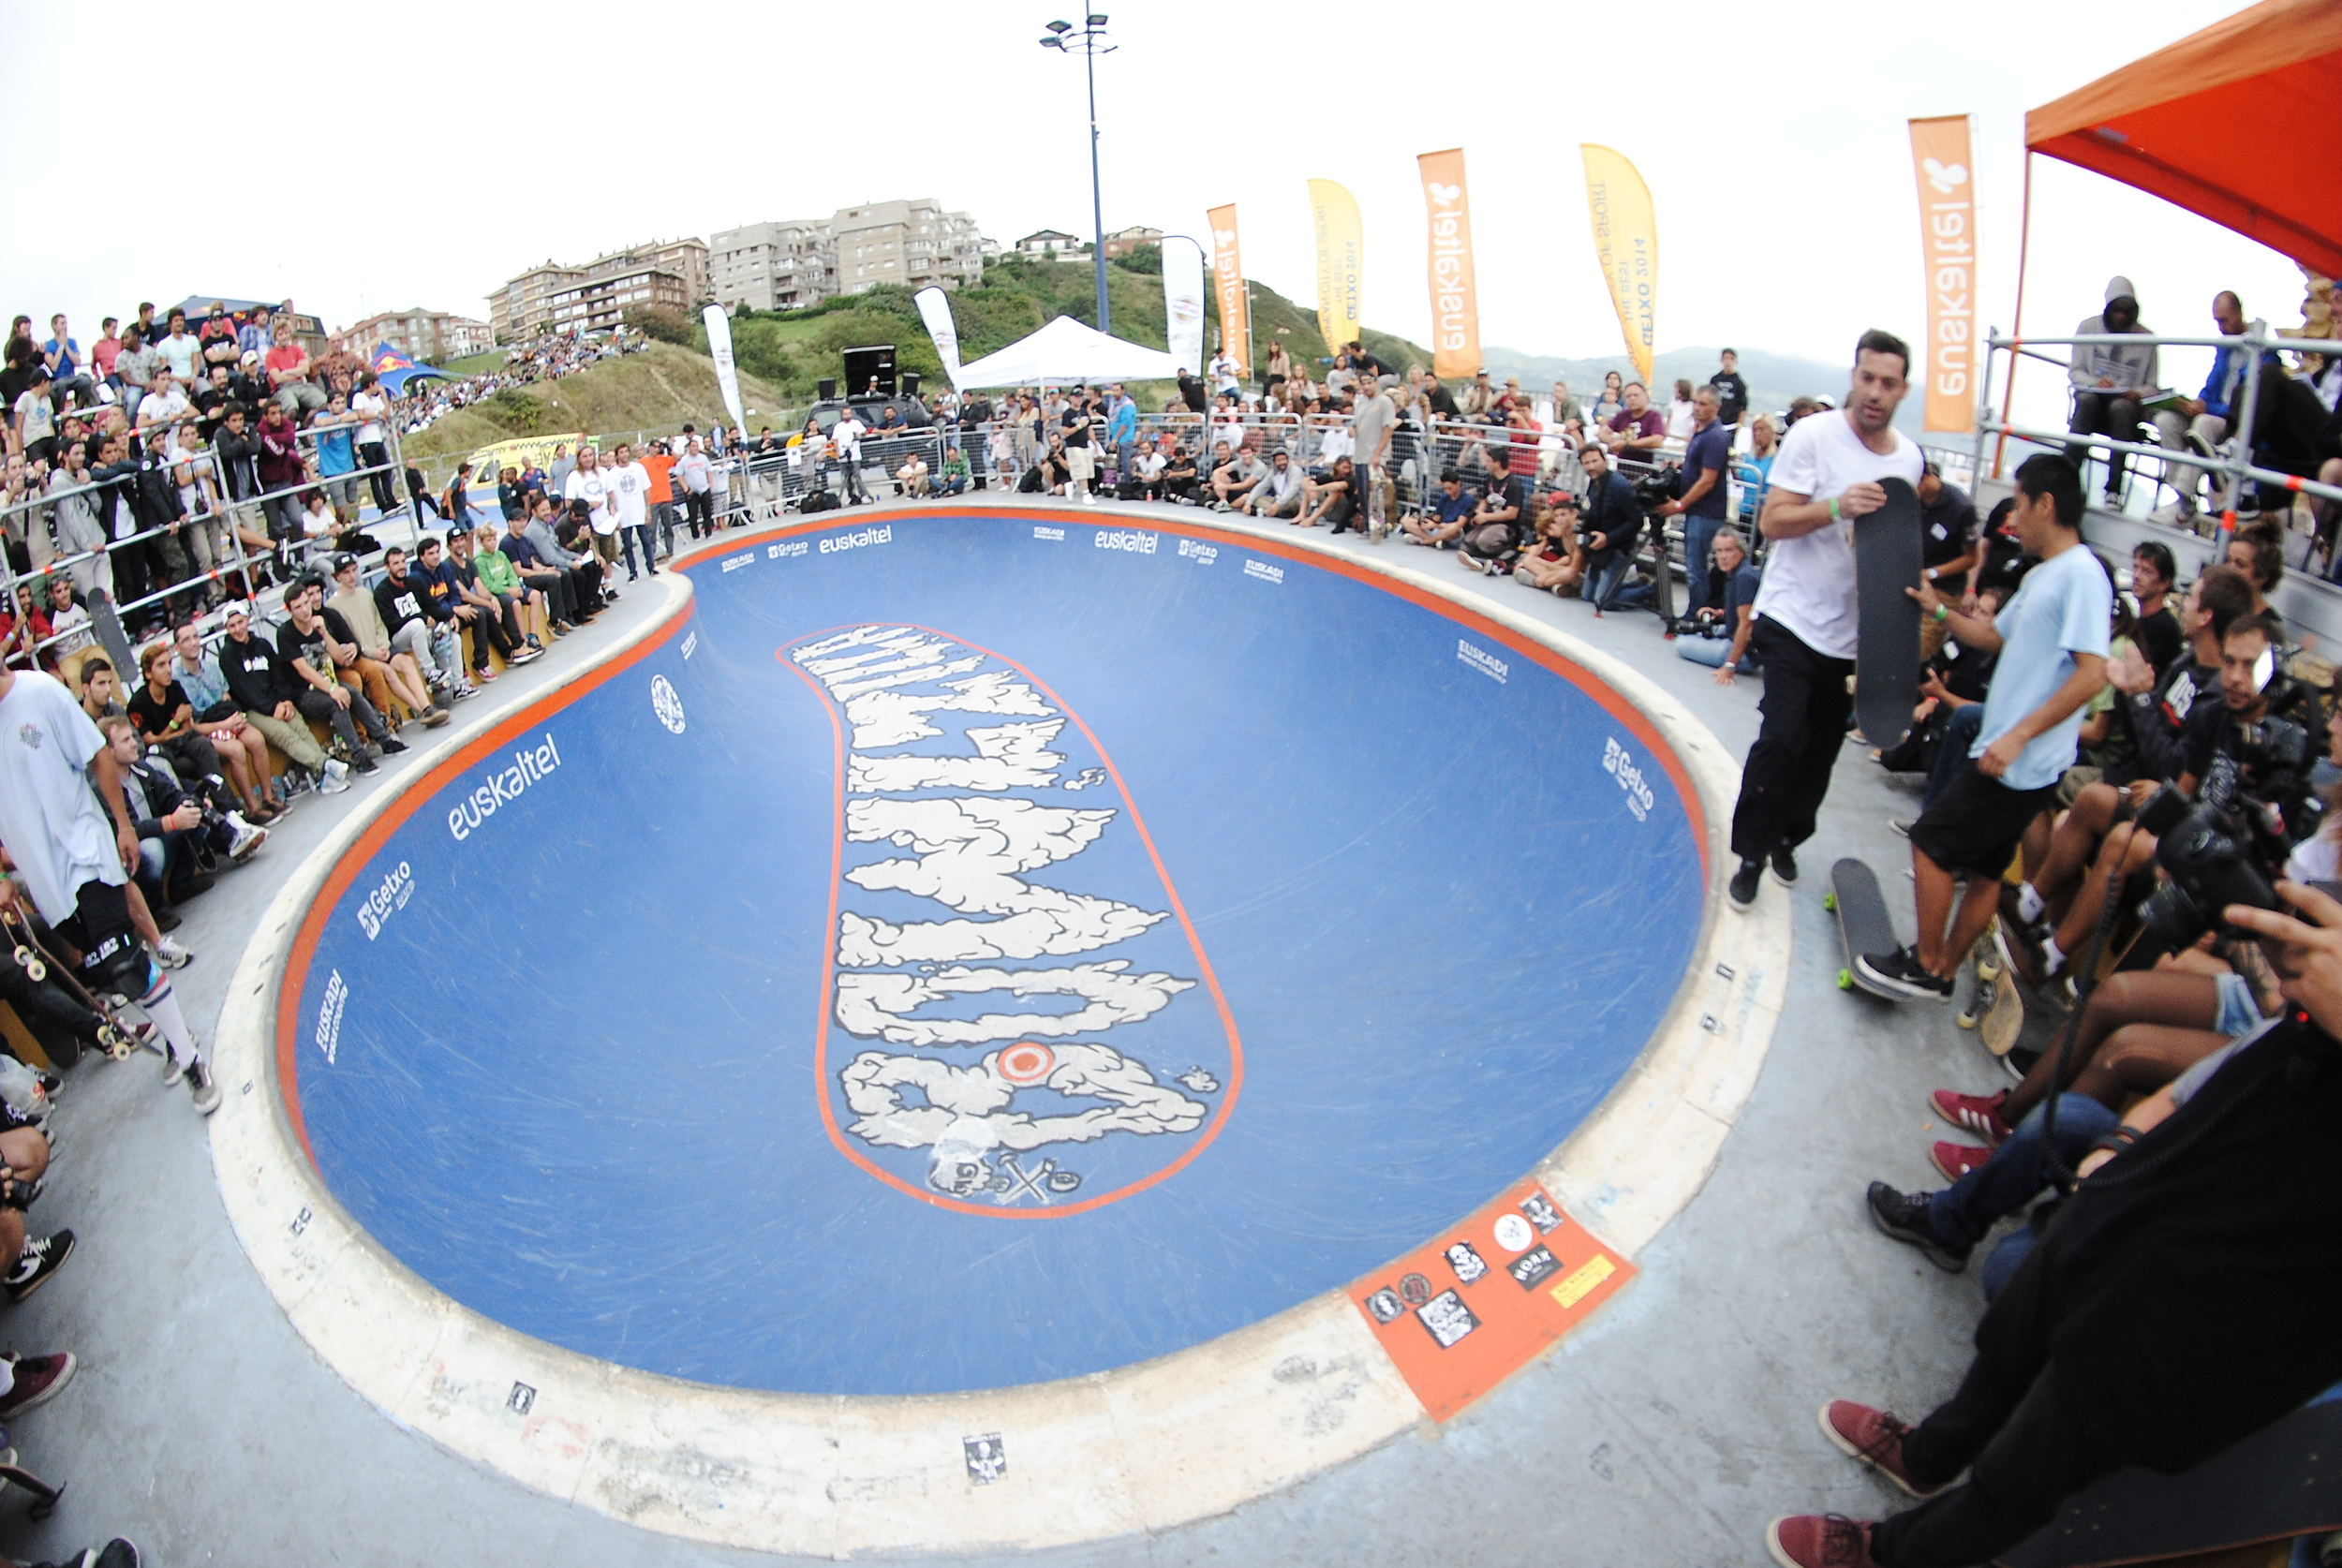 Eusklatel BOWLZILLA Getxo 2015-Finals-BowlOverview-Photo Borja Casas.JPG